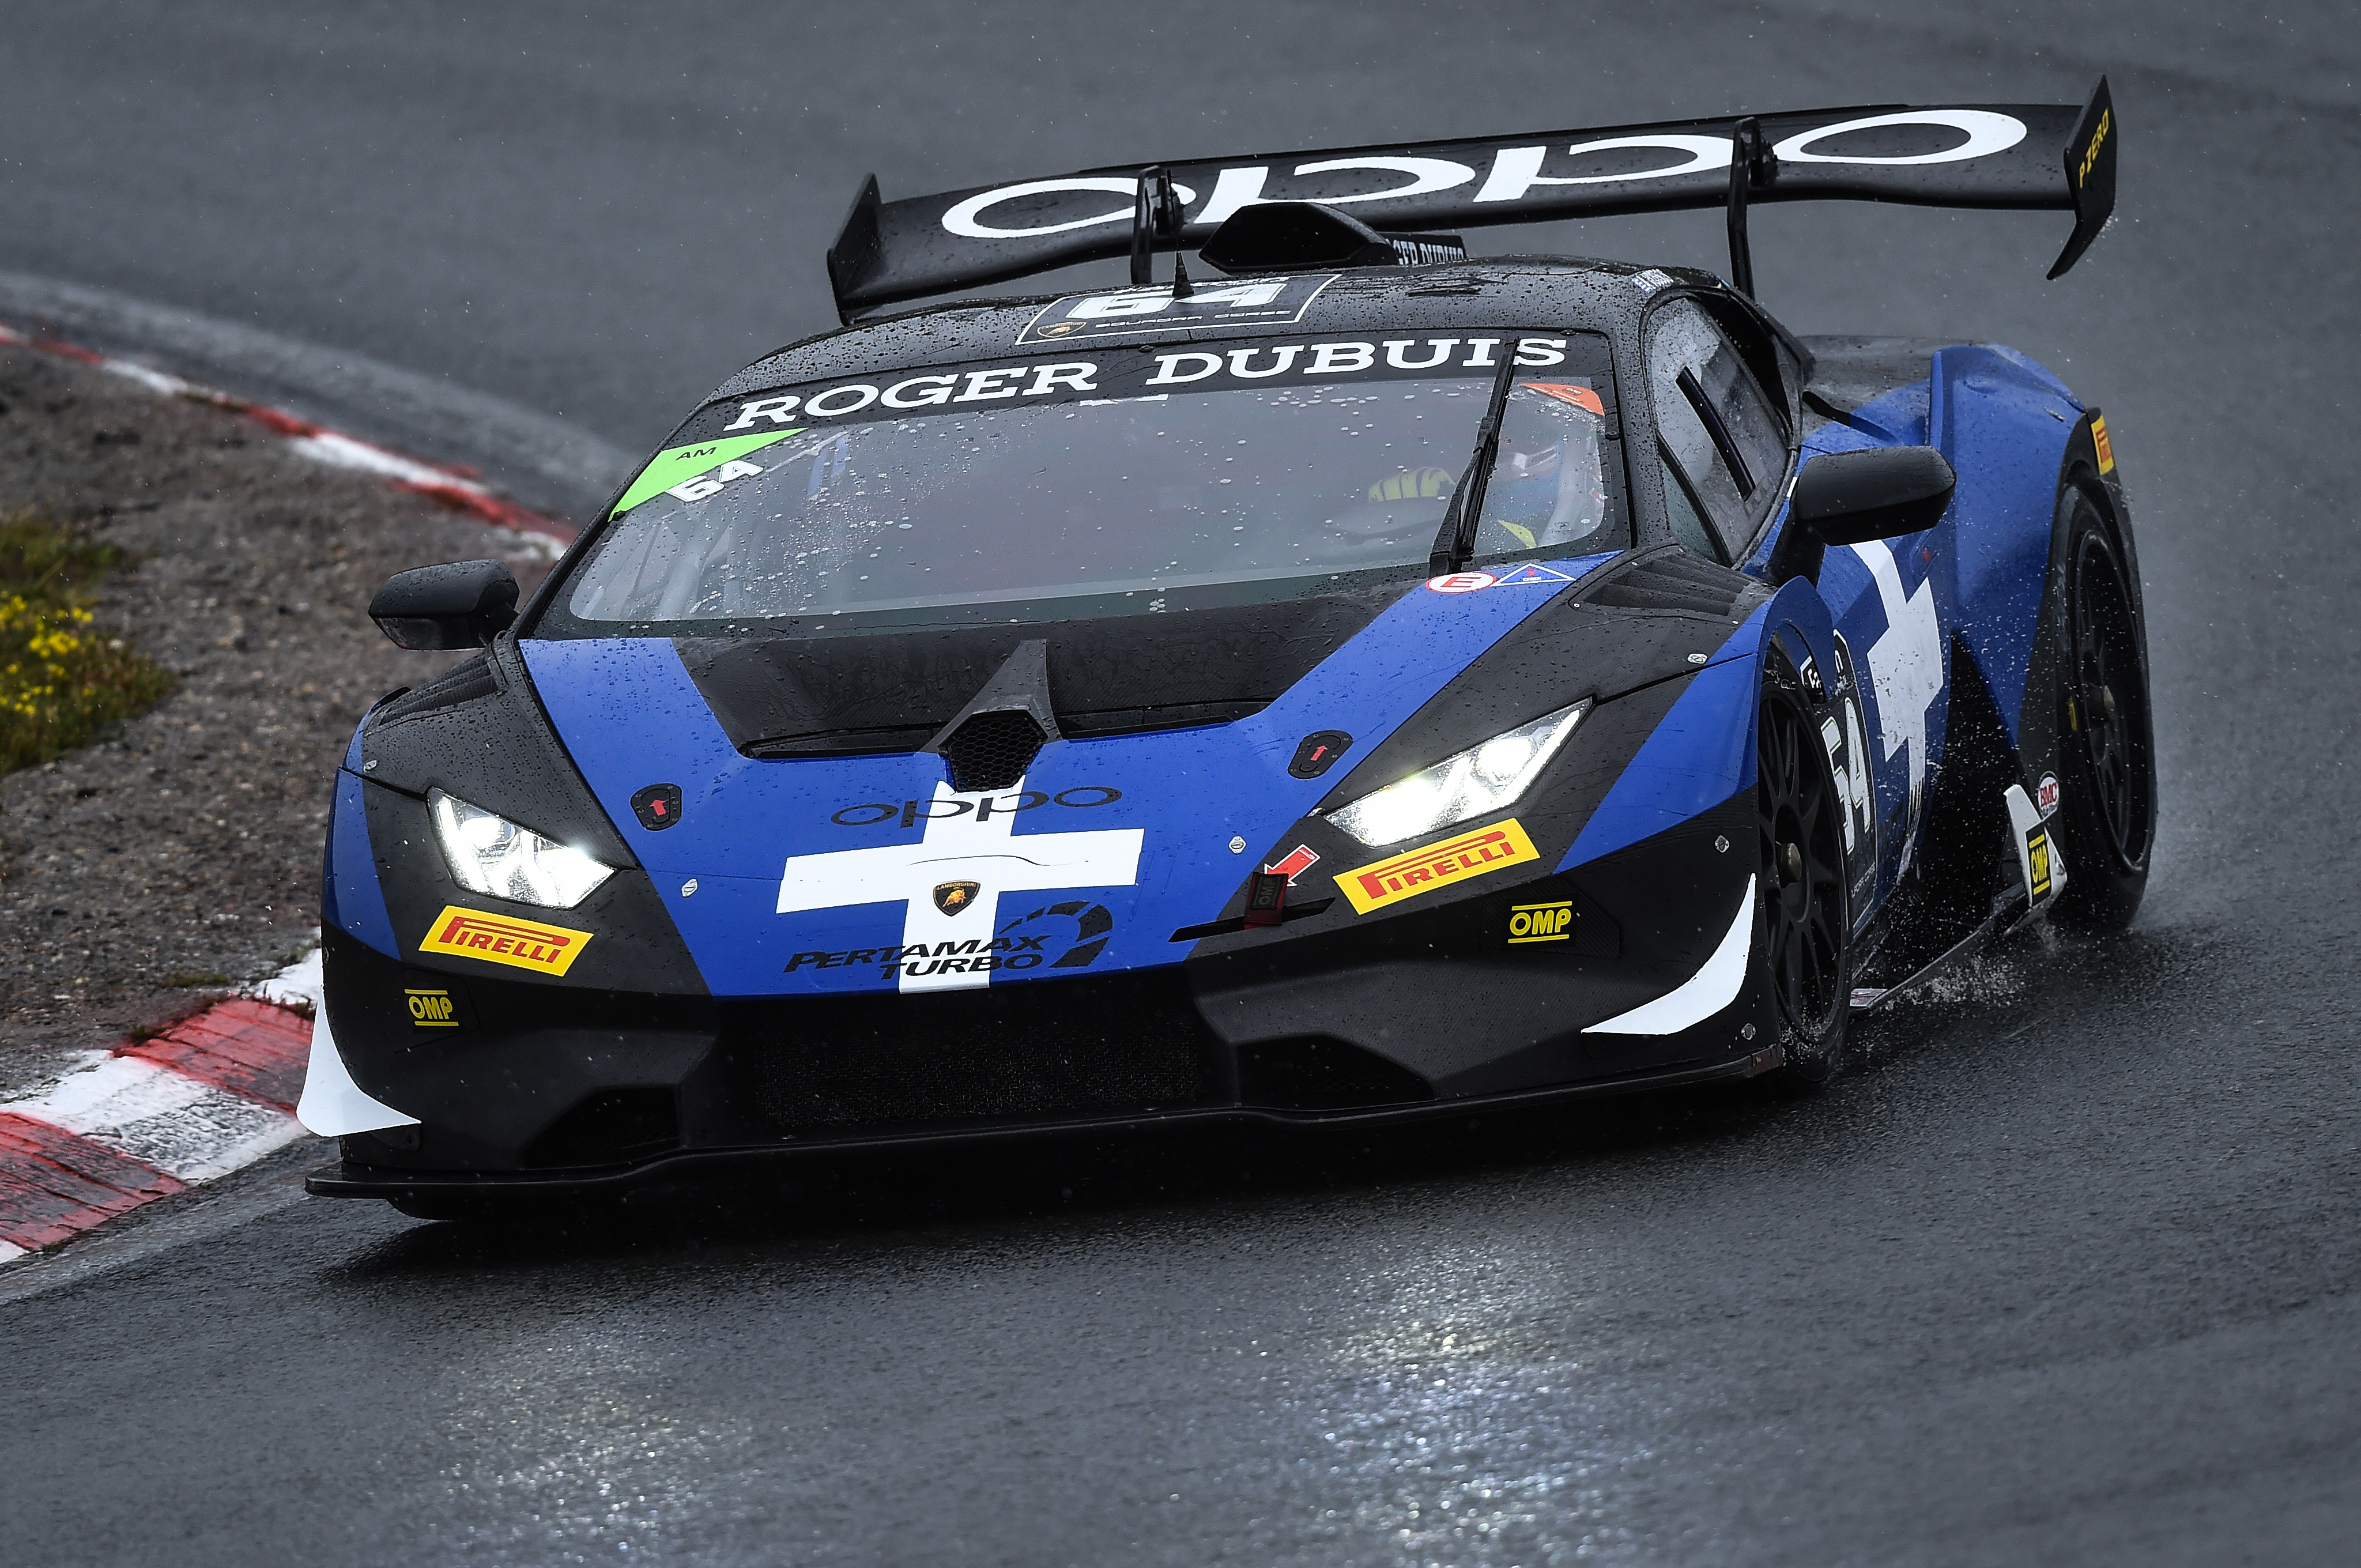 Target grabs podium at Zandvoort on Lamborghini Supertrofeo